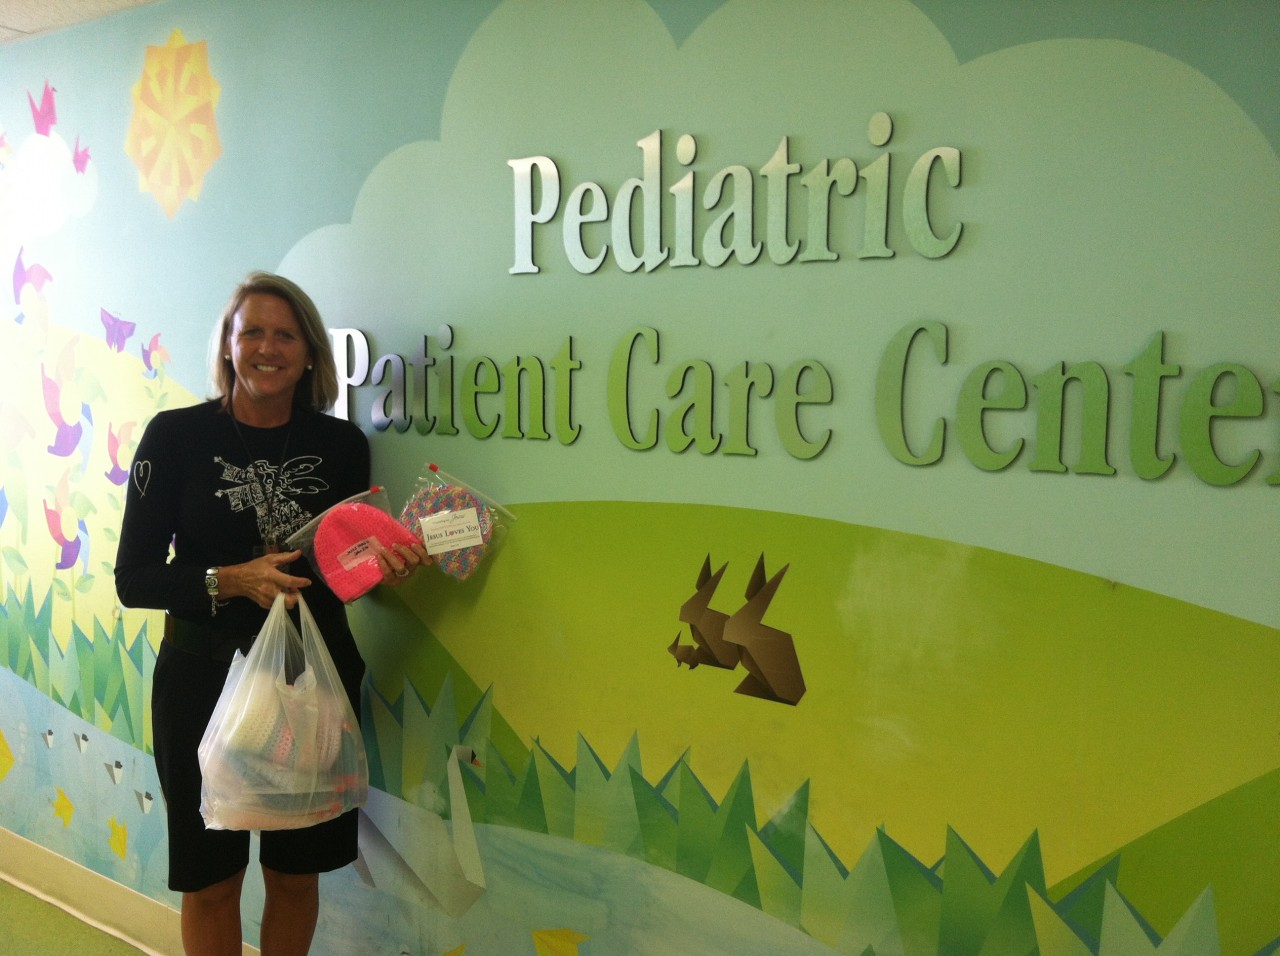 Donated caps to Memorial Children's Hospital in South Bend, Indiana